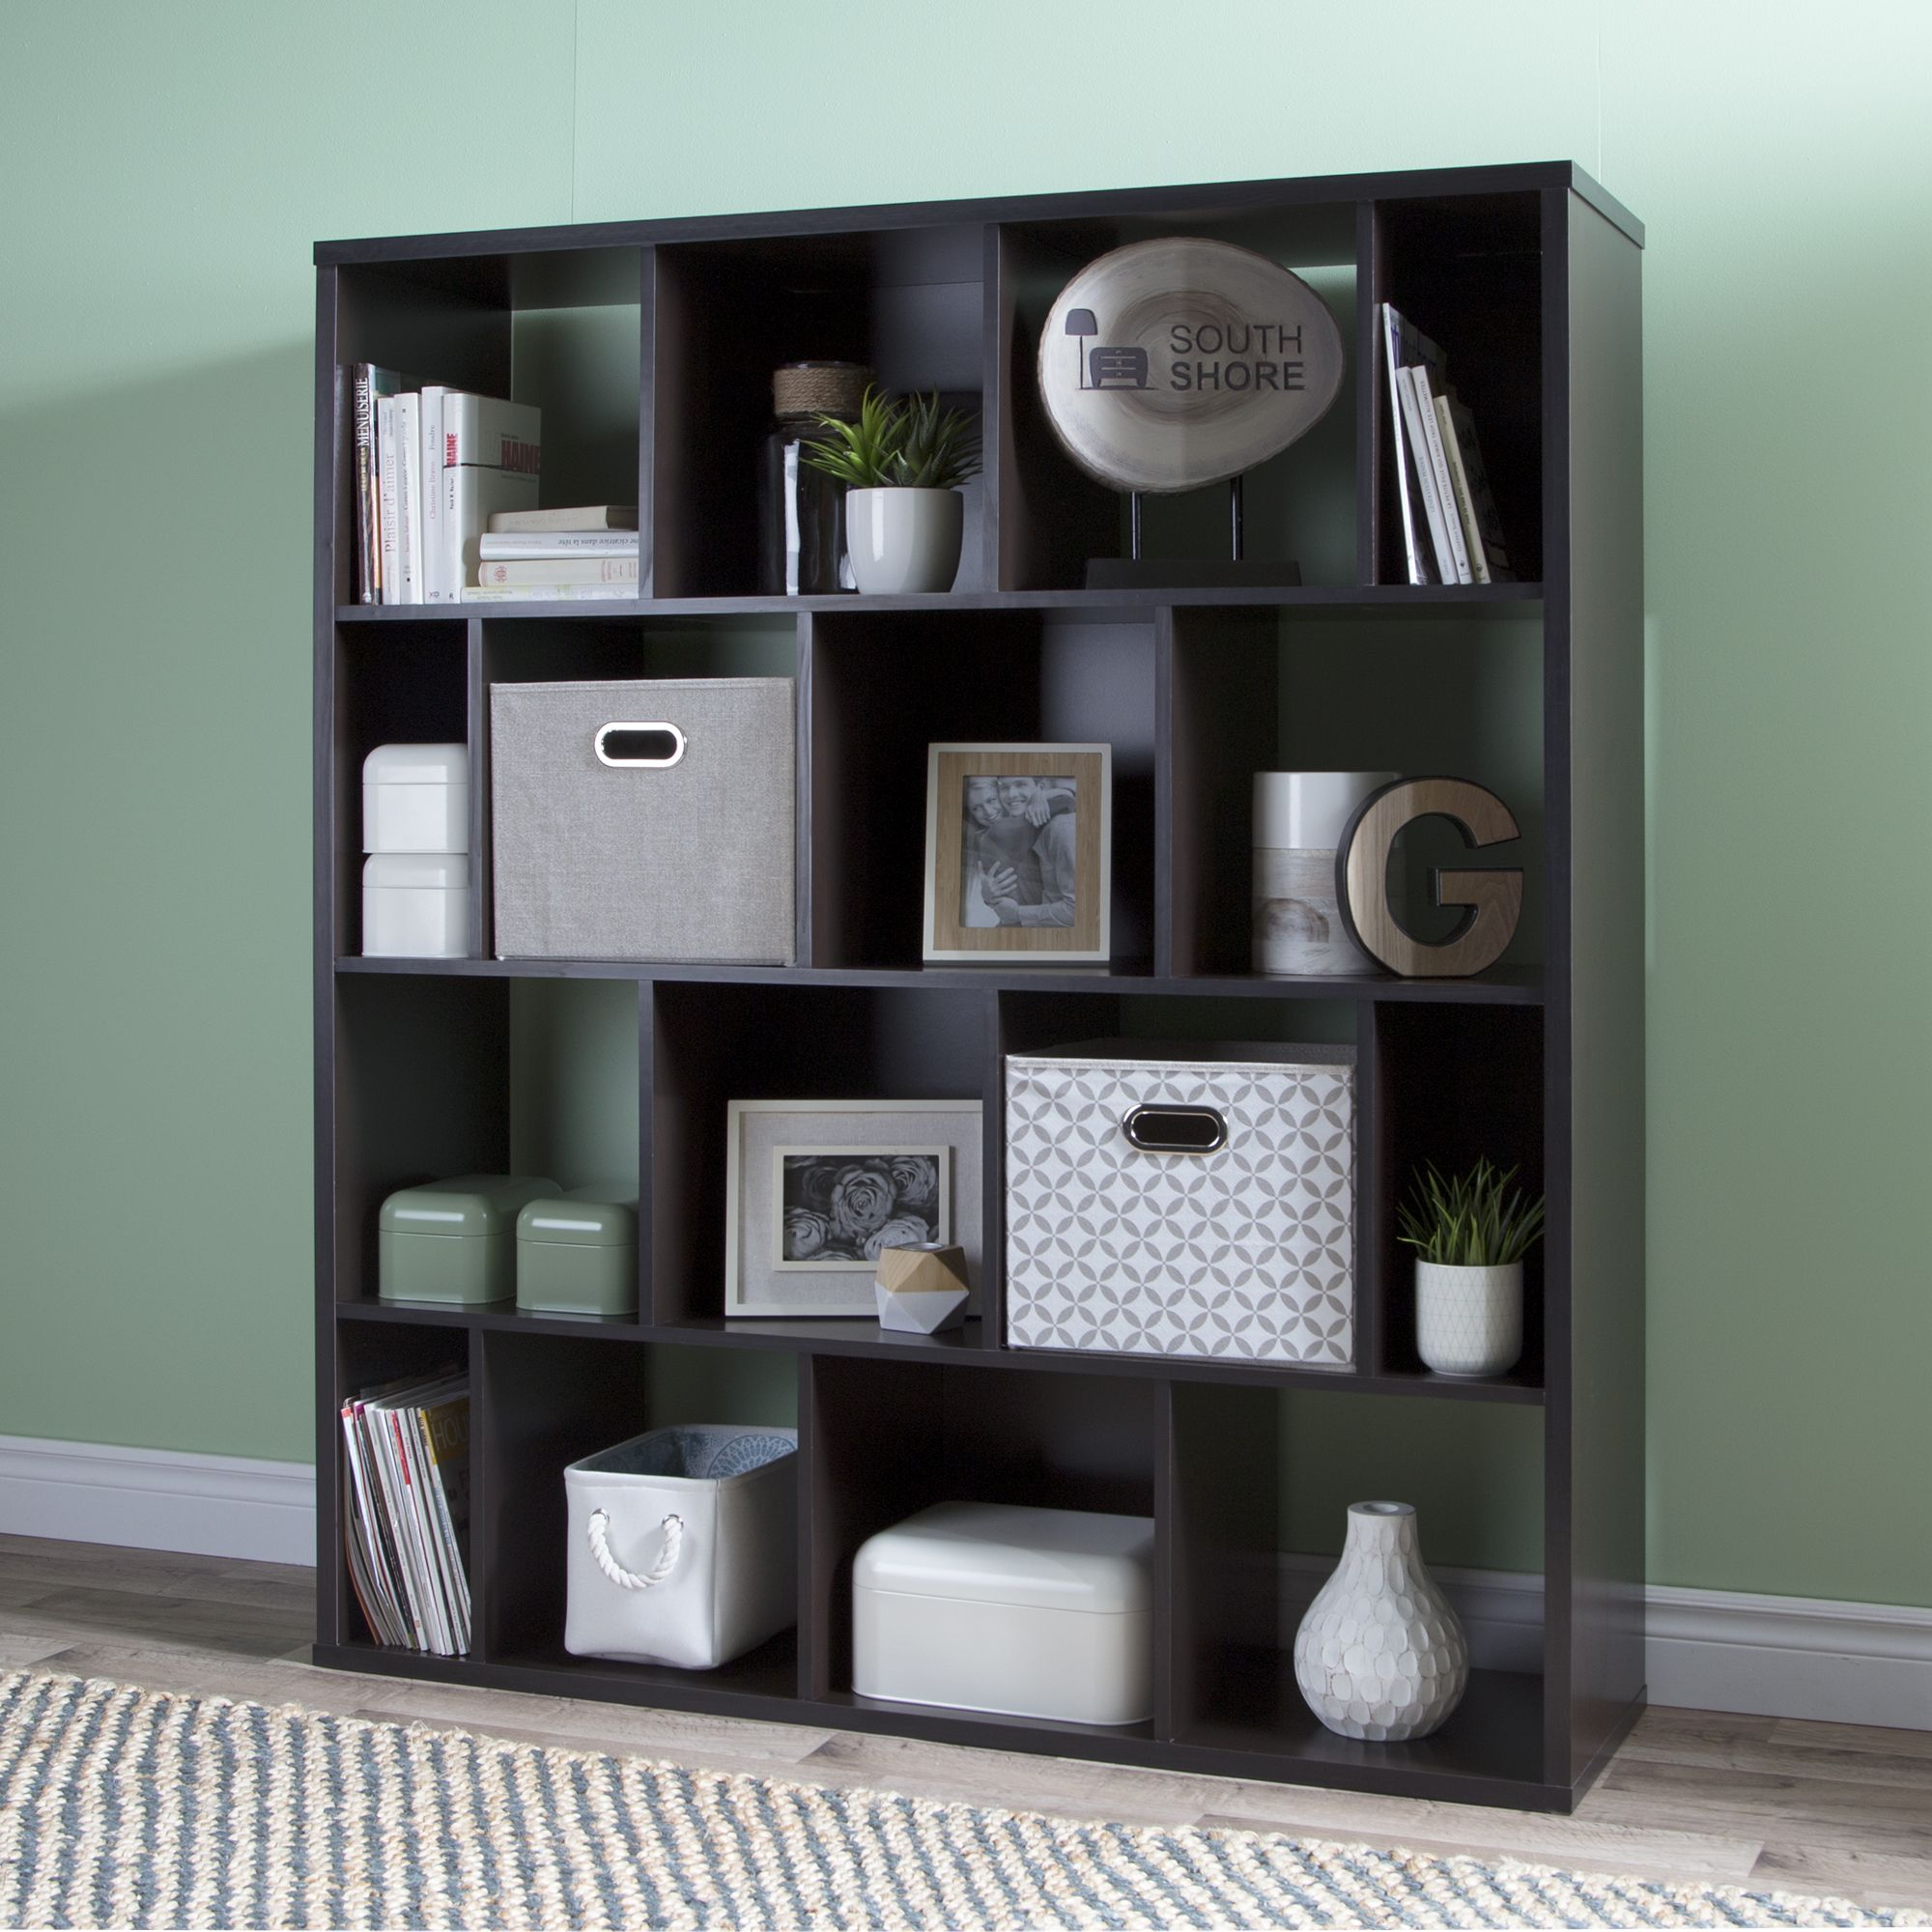 Playroom Shelving Units